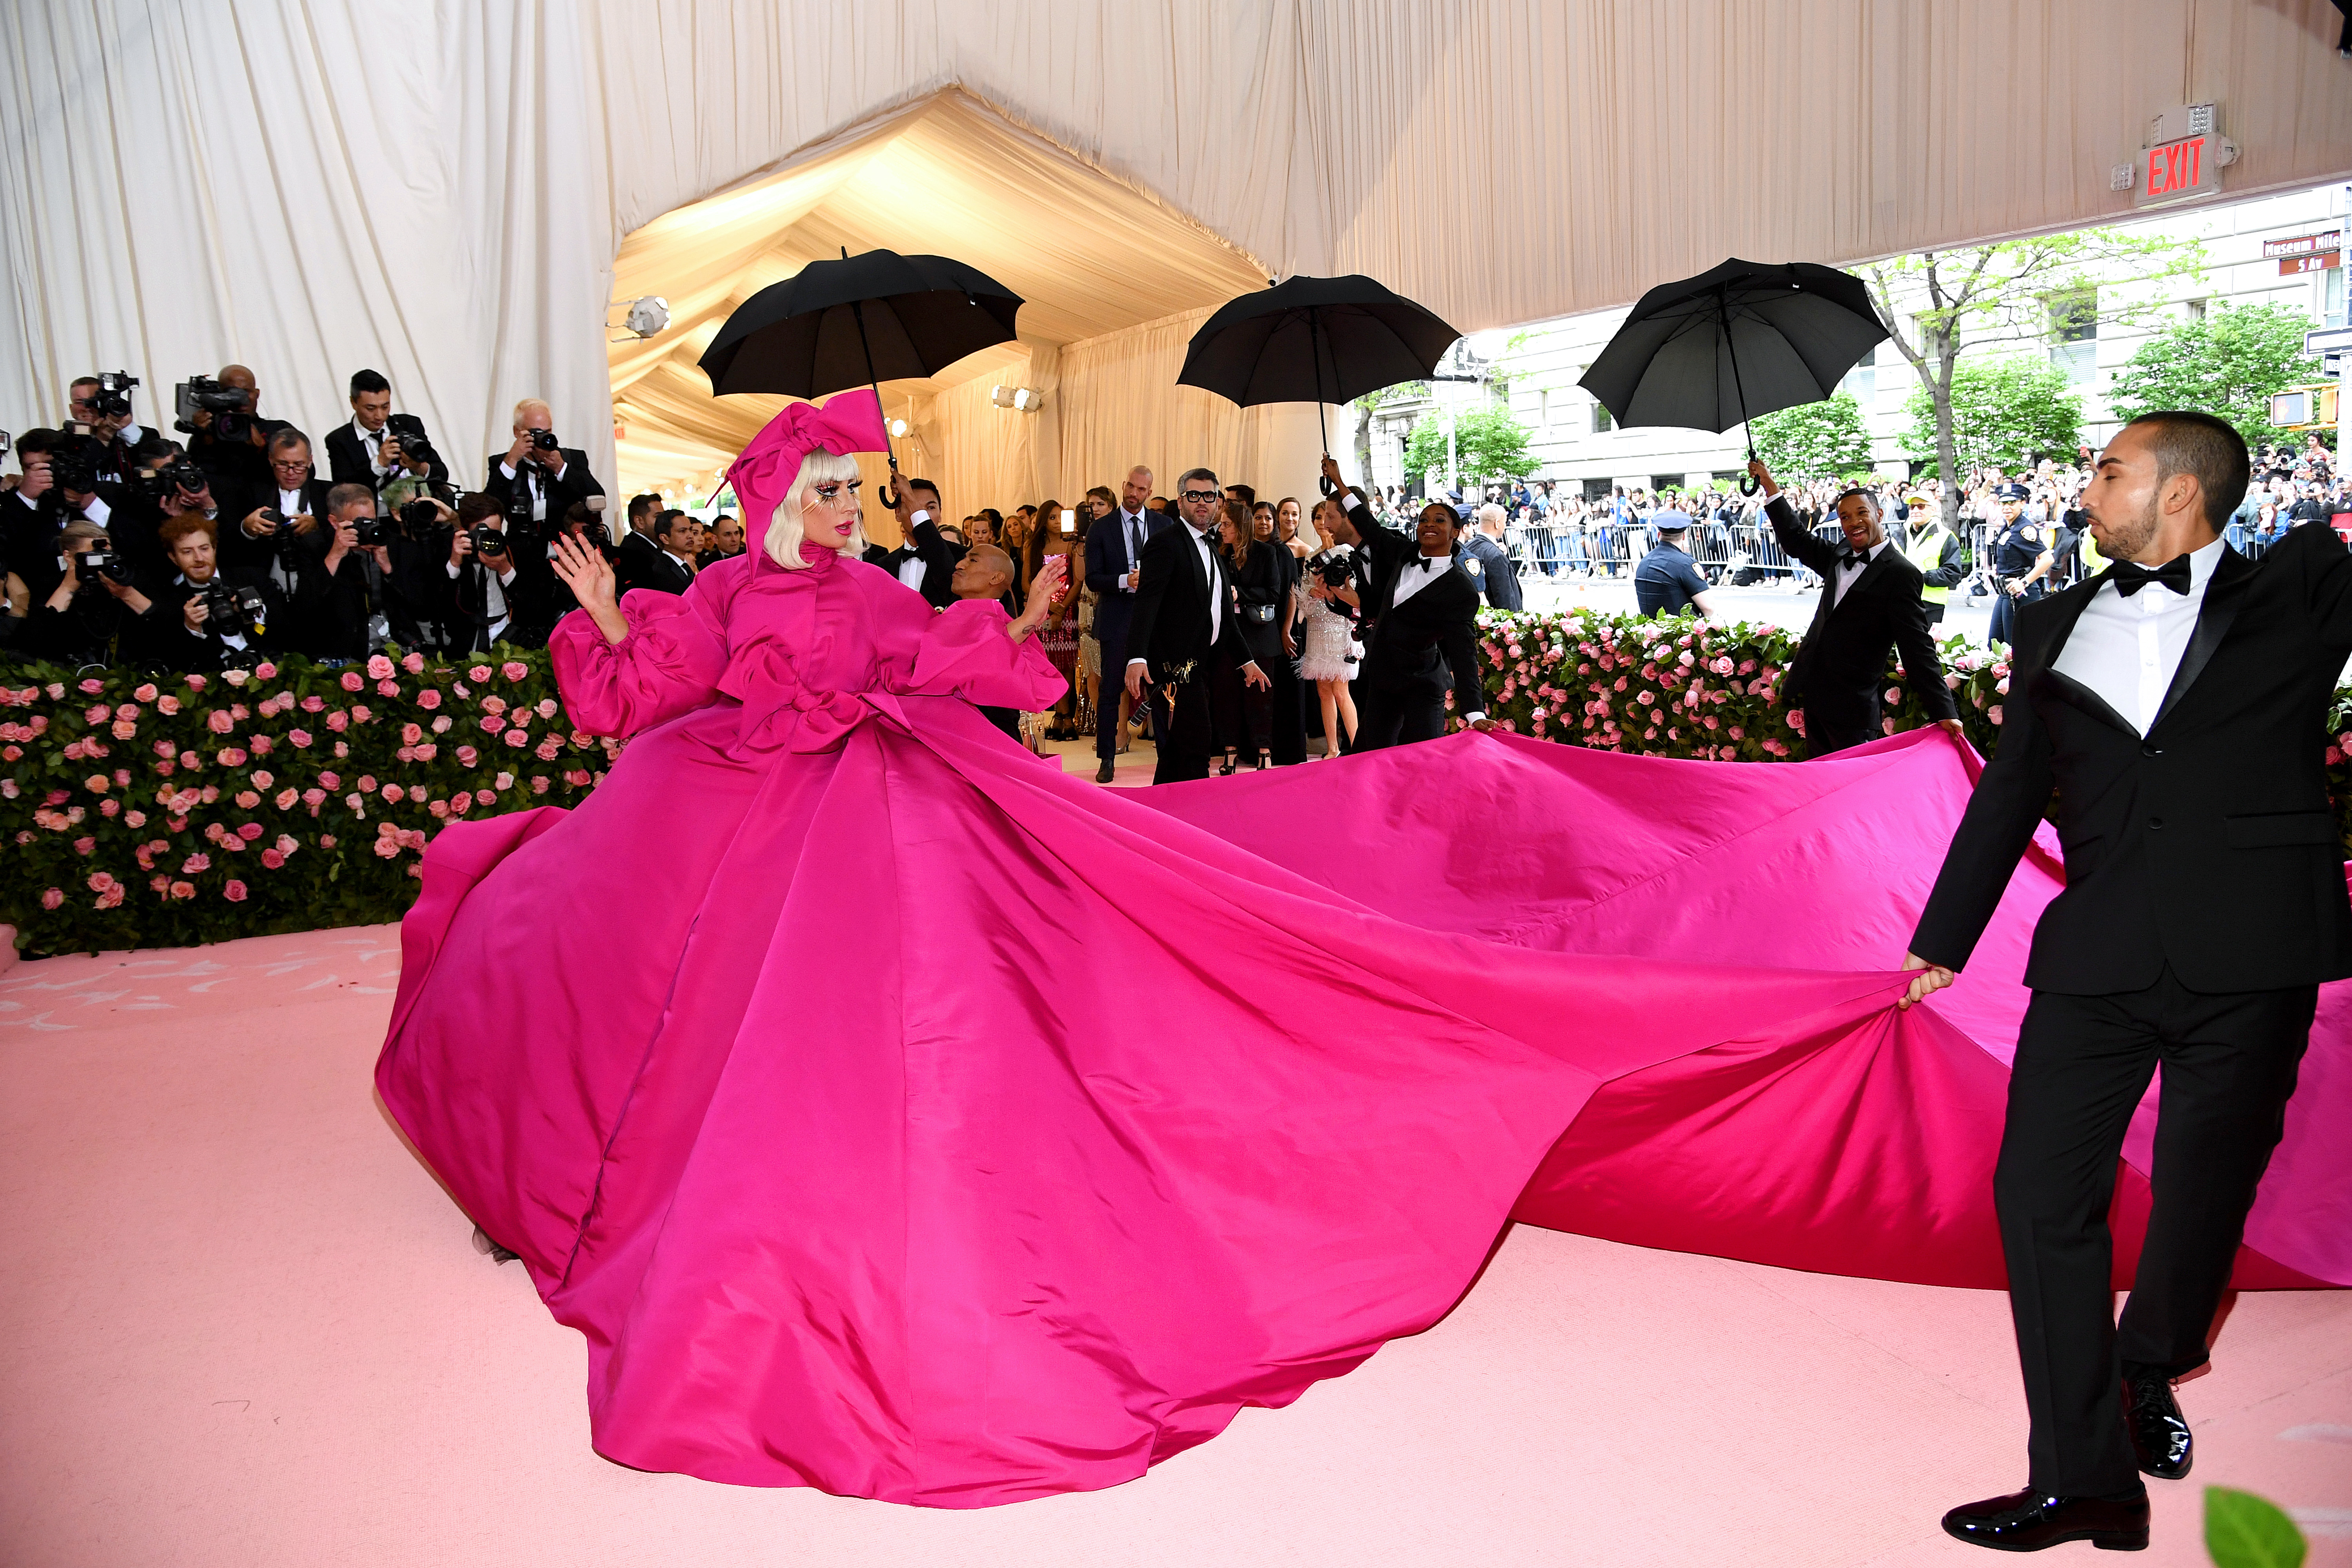 What is camp: this year's Met Gala theme, explained - Vox